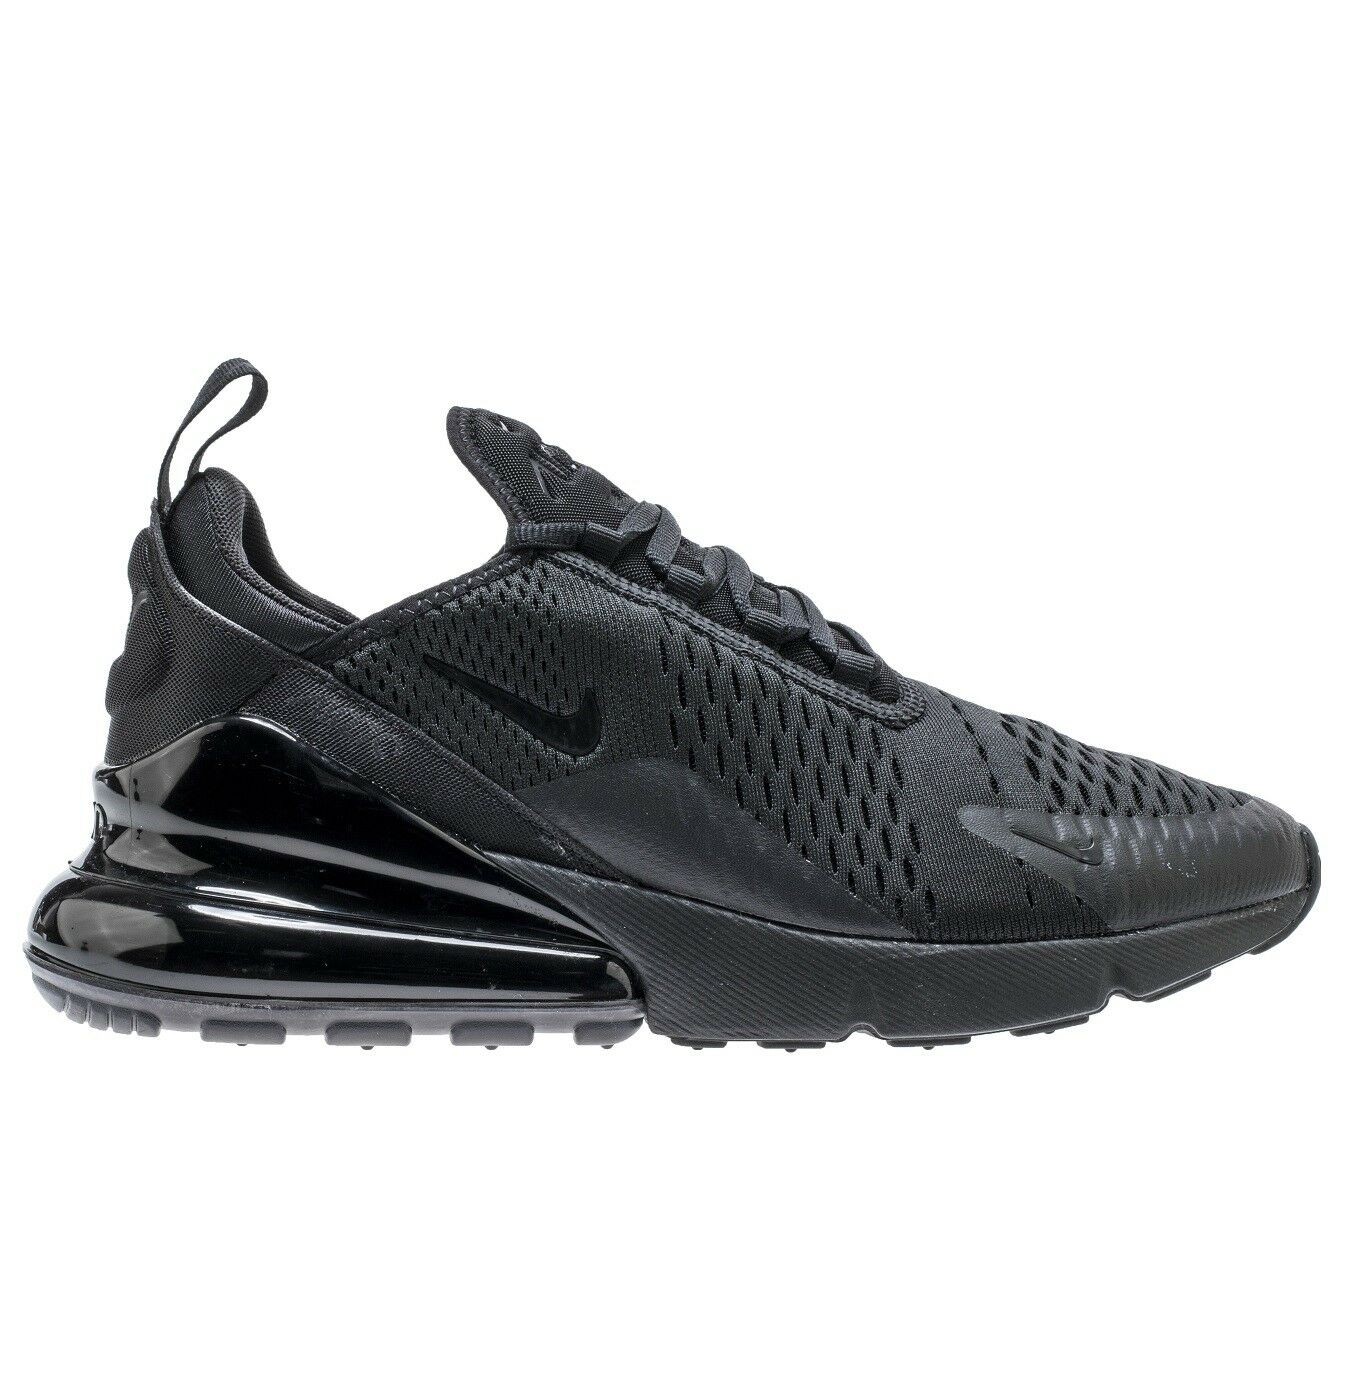 nike champions converse pro cuir le scoop champions nike pense que 16 161328c taille 11 968769